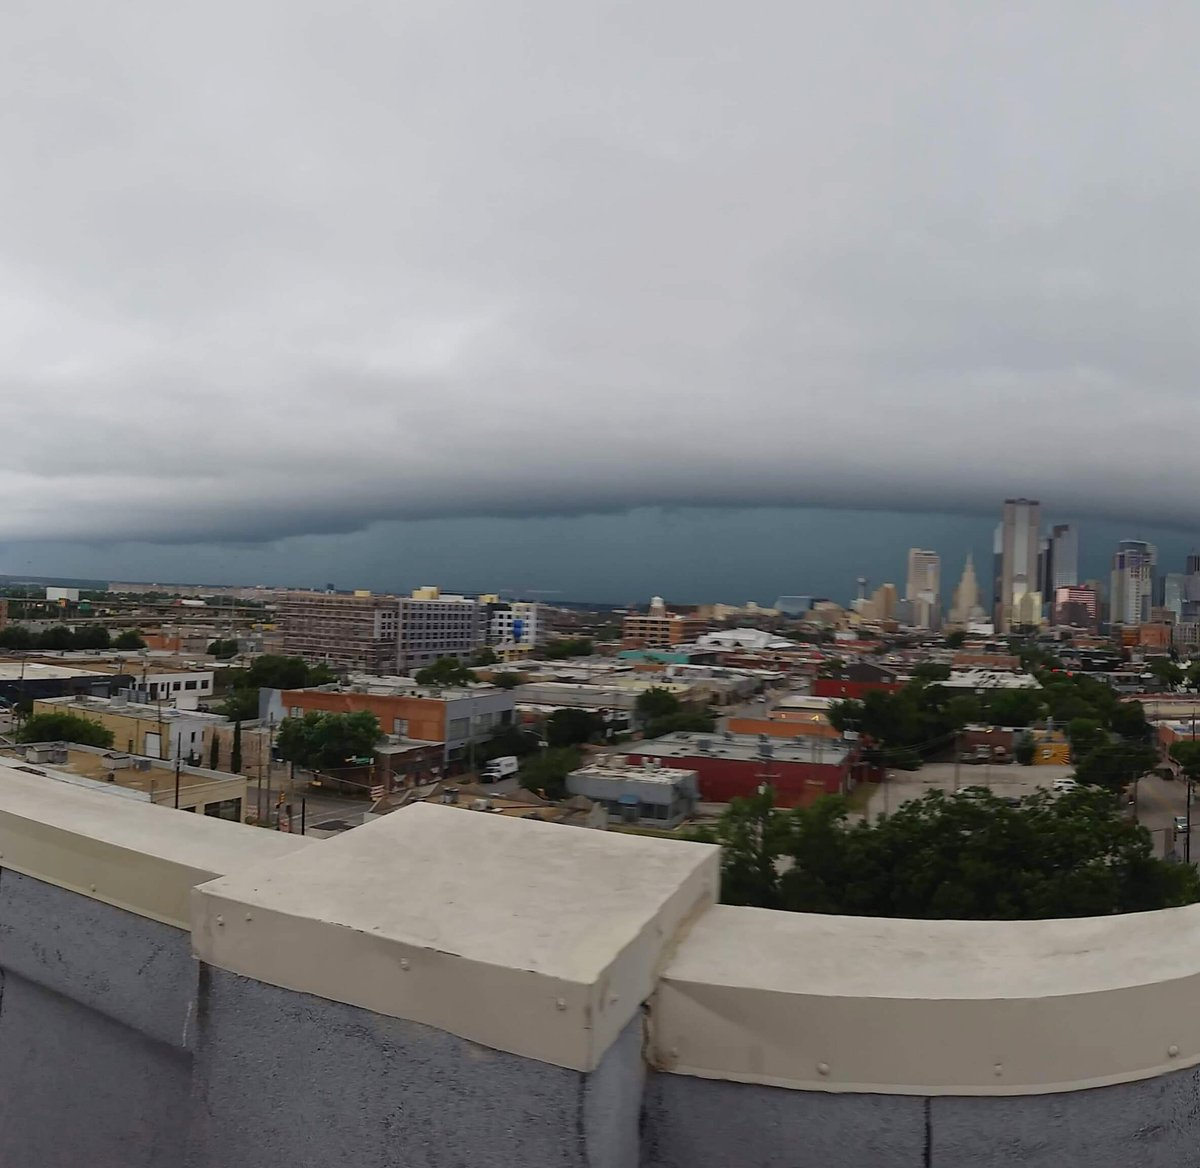 Watched this gorgeous beast of a storm roll into Dallas from the rooftop. 😮 Don't judge my bad cellphone photography. 😅 . . #deepellum #dallas #dallasweather #storm #stormfront